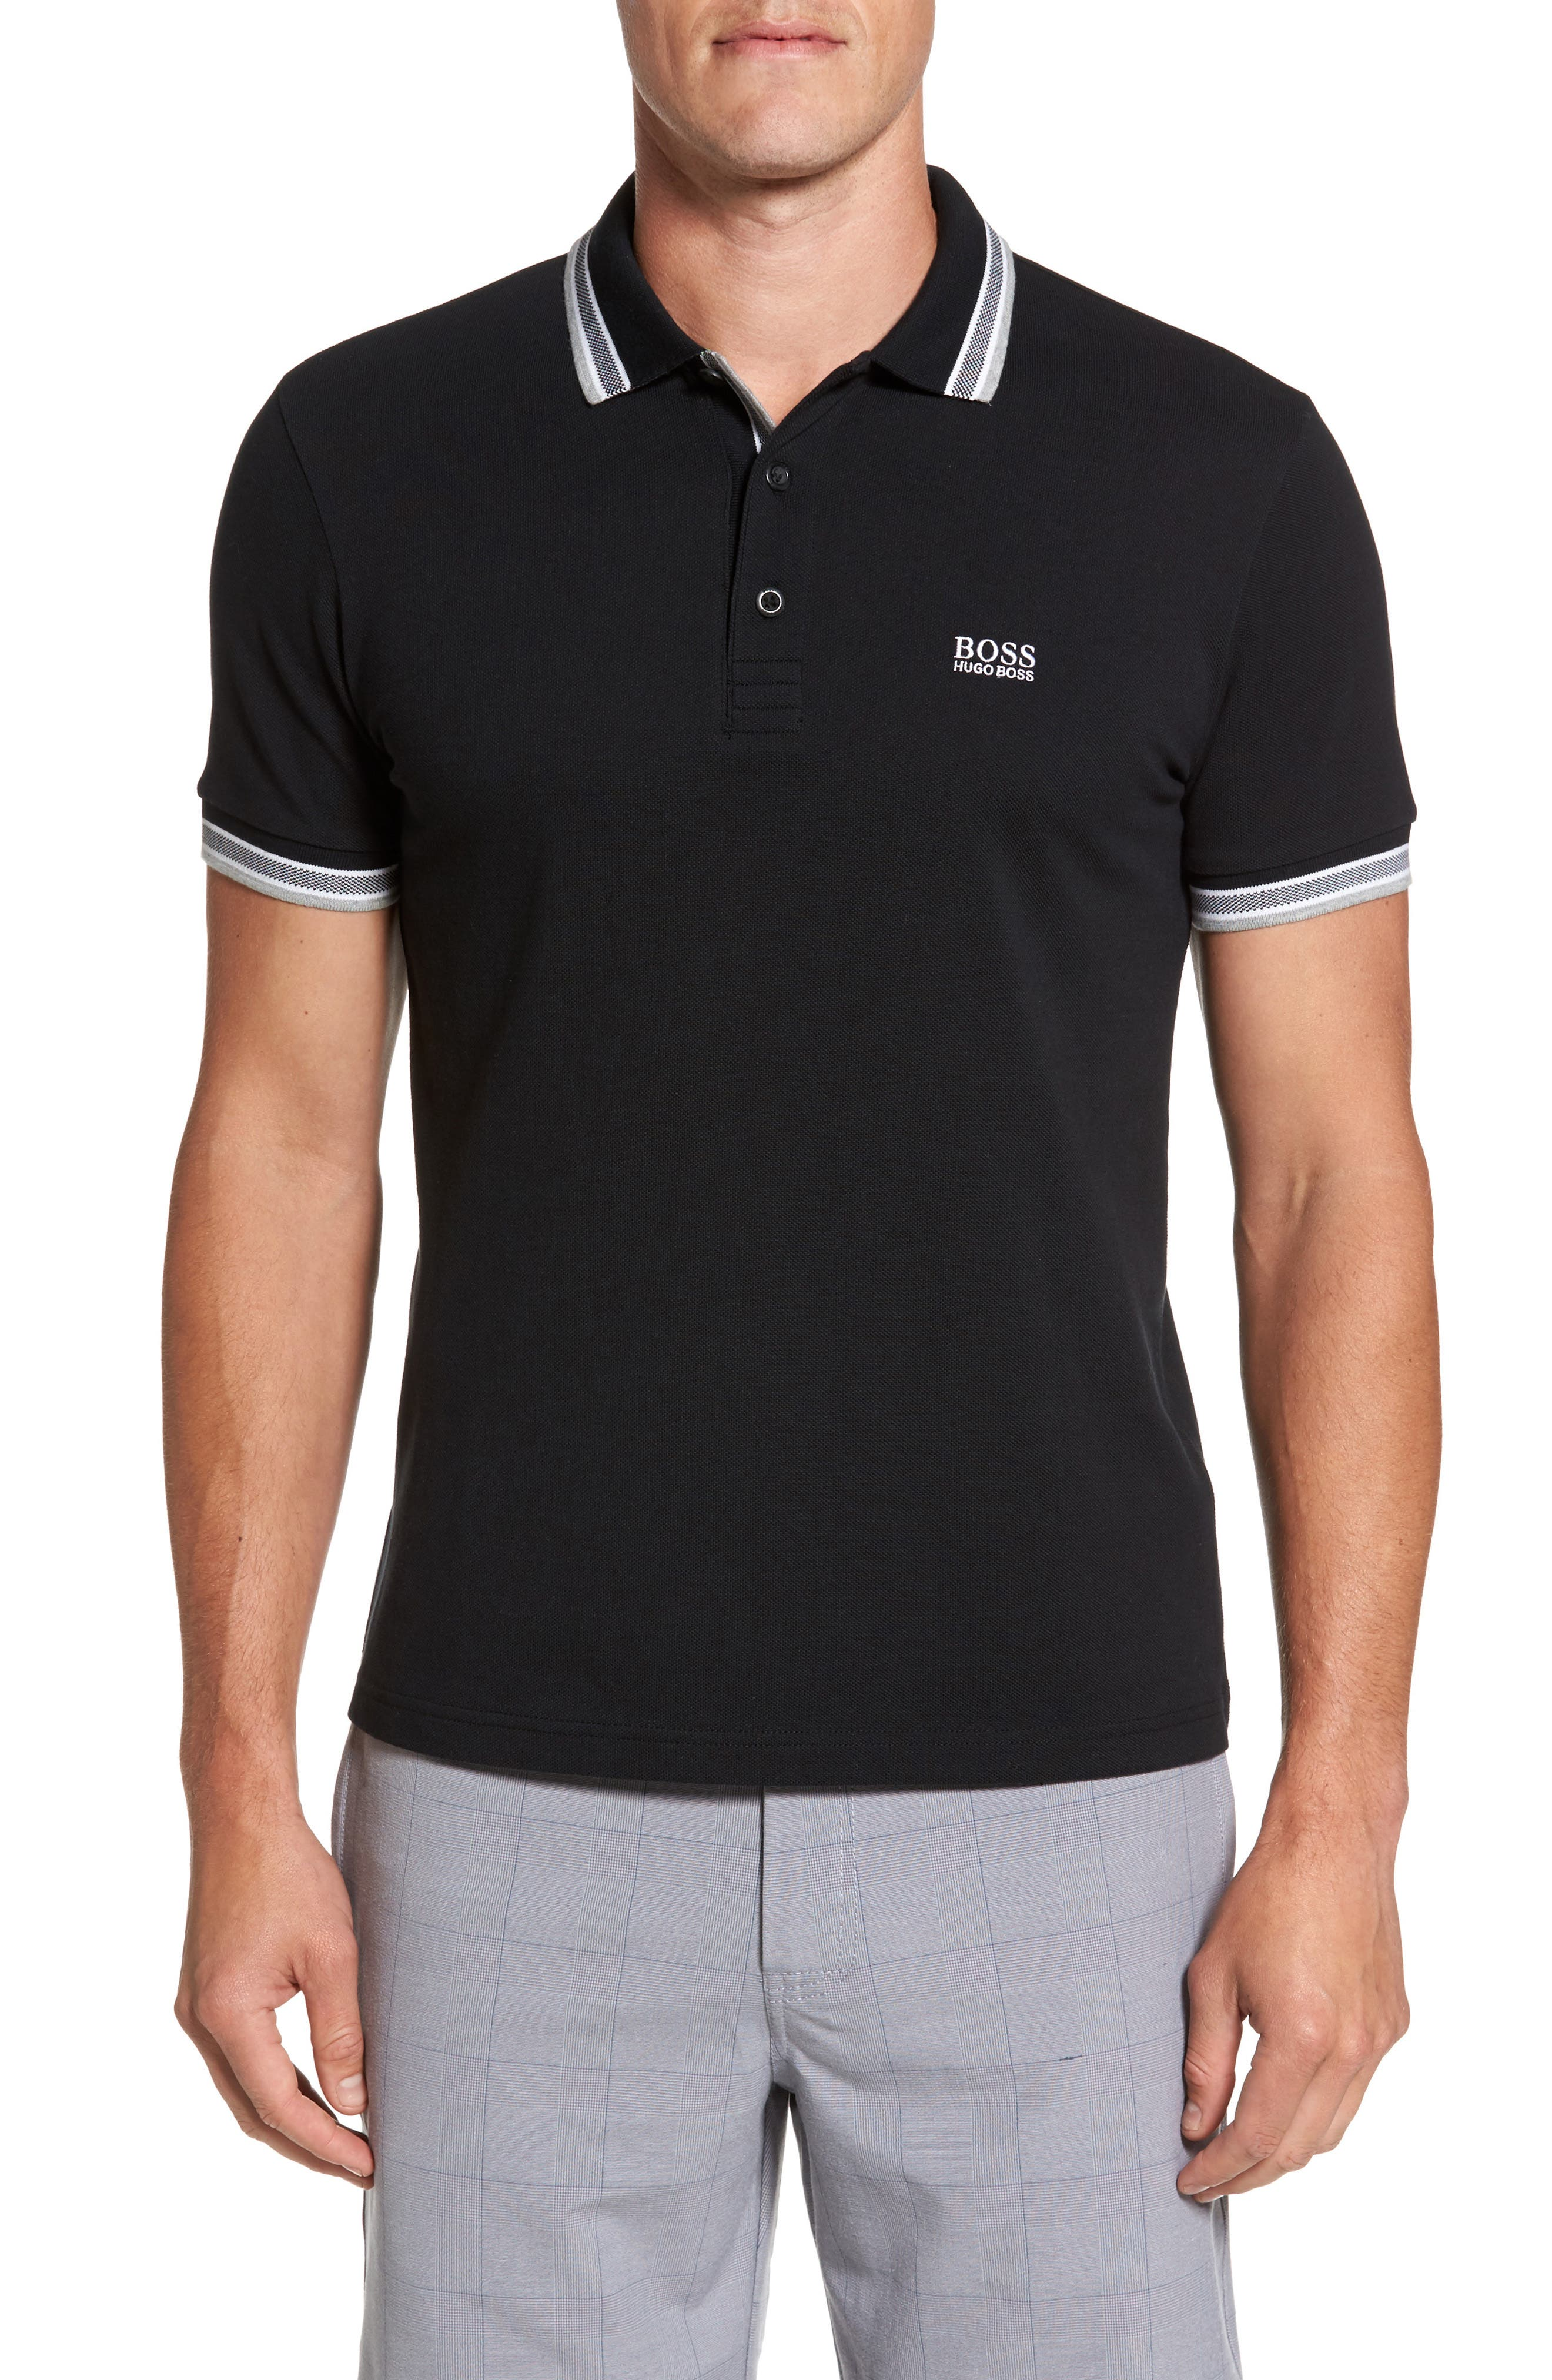 Main Image - BOSS Green 'Basic' Piqué Golf Polo